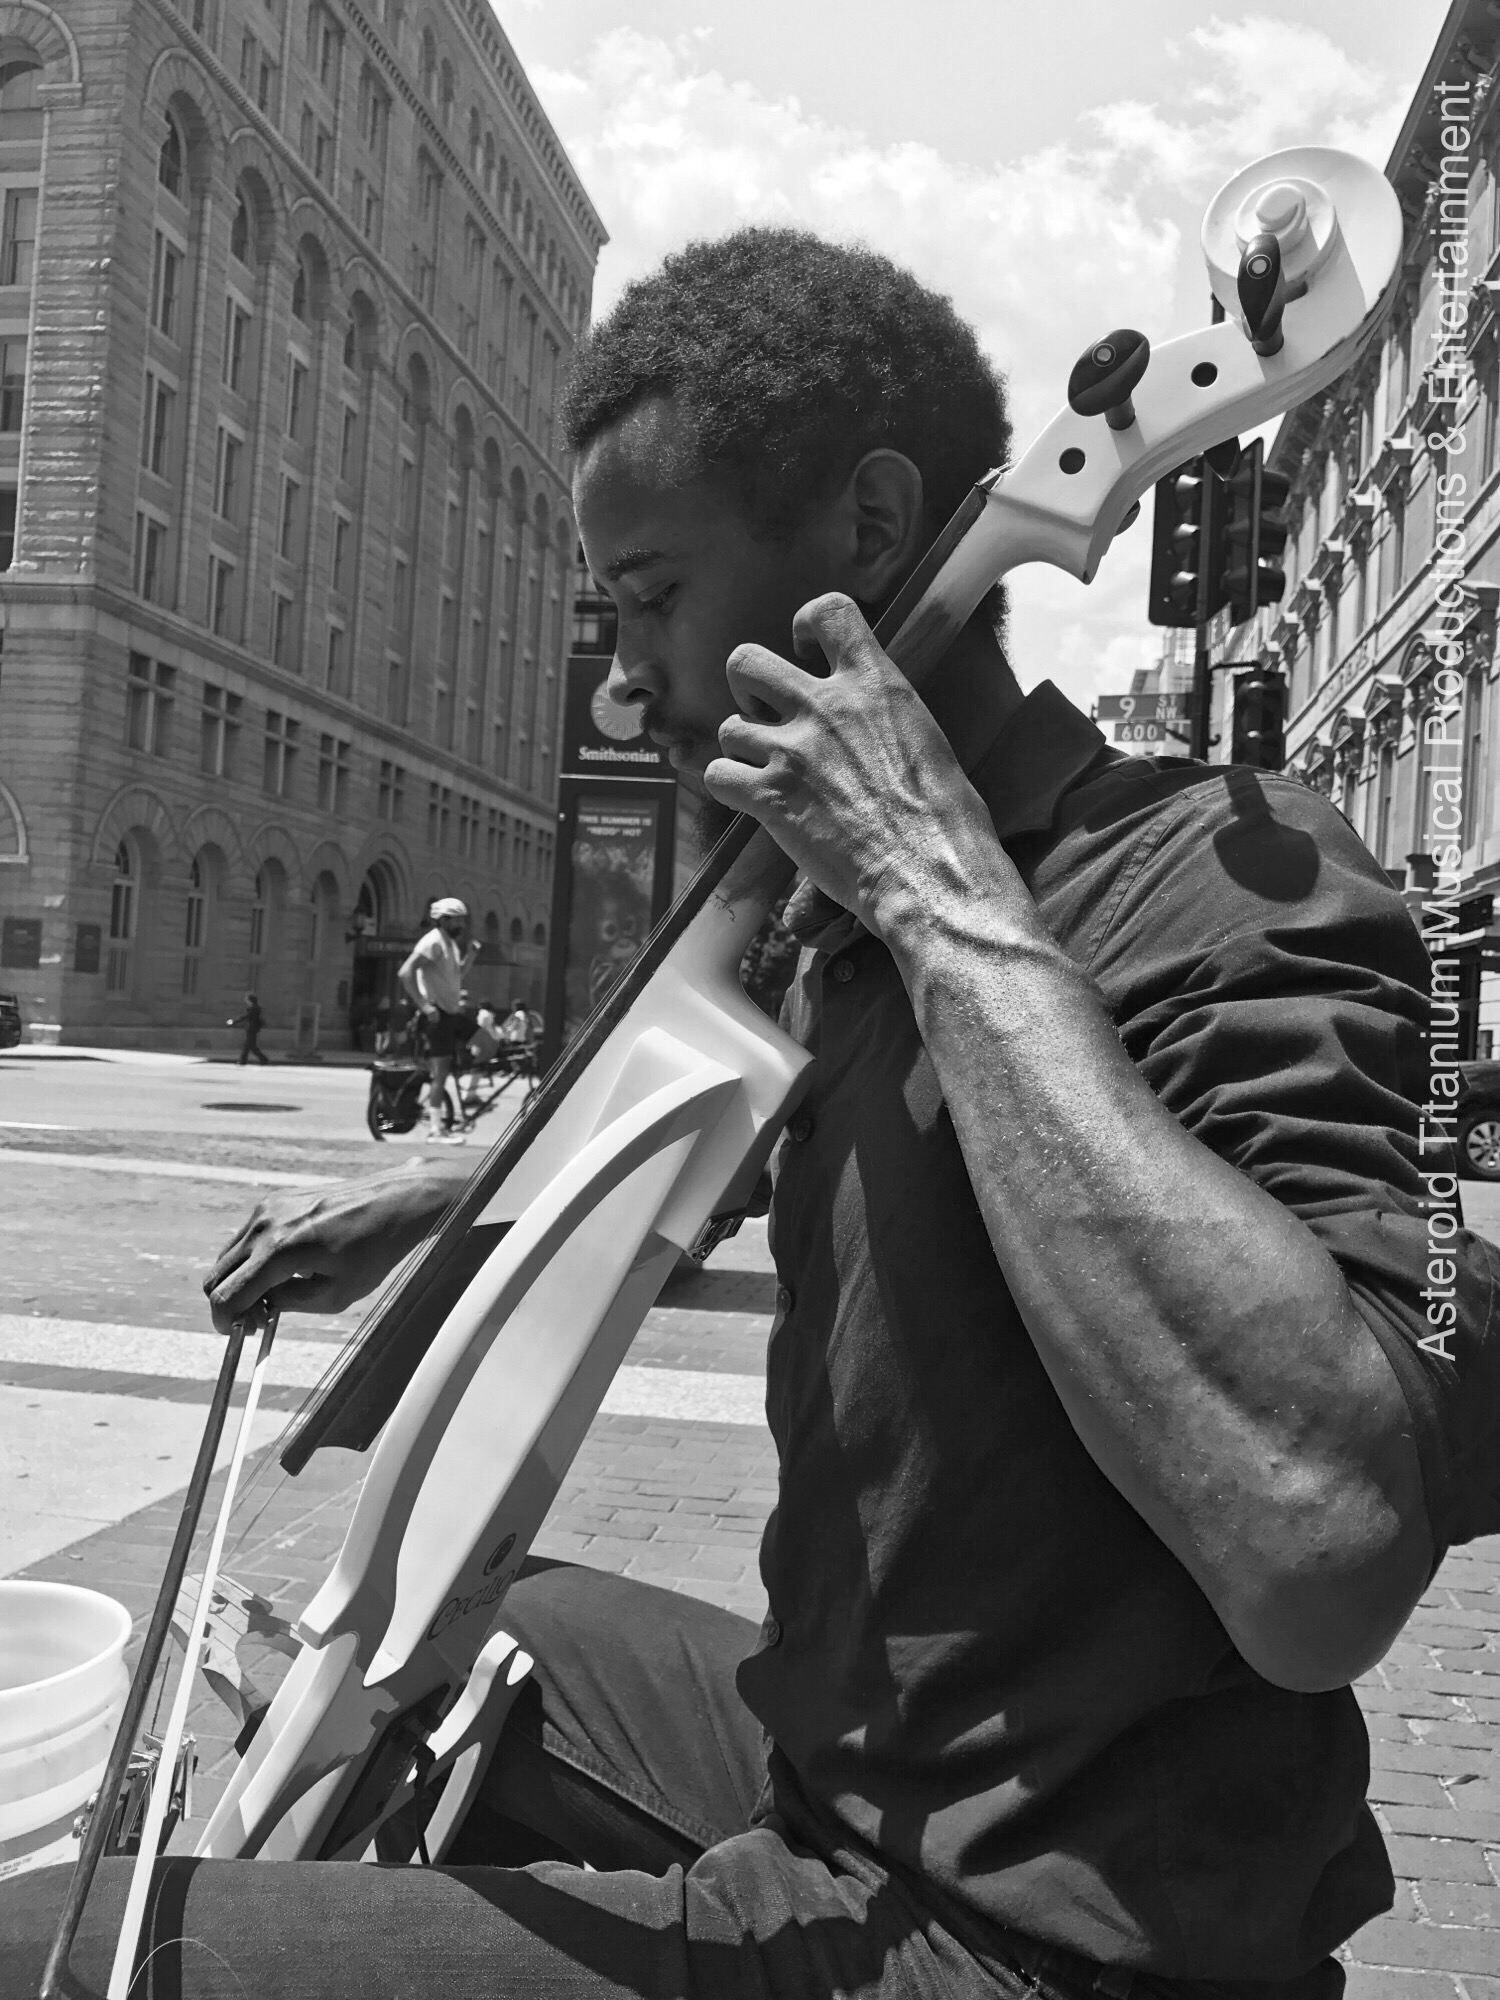 Benjamin Being A Musician For The People. (Busking)